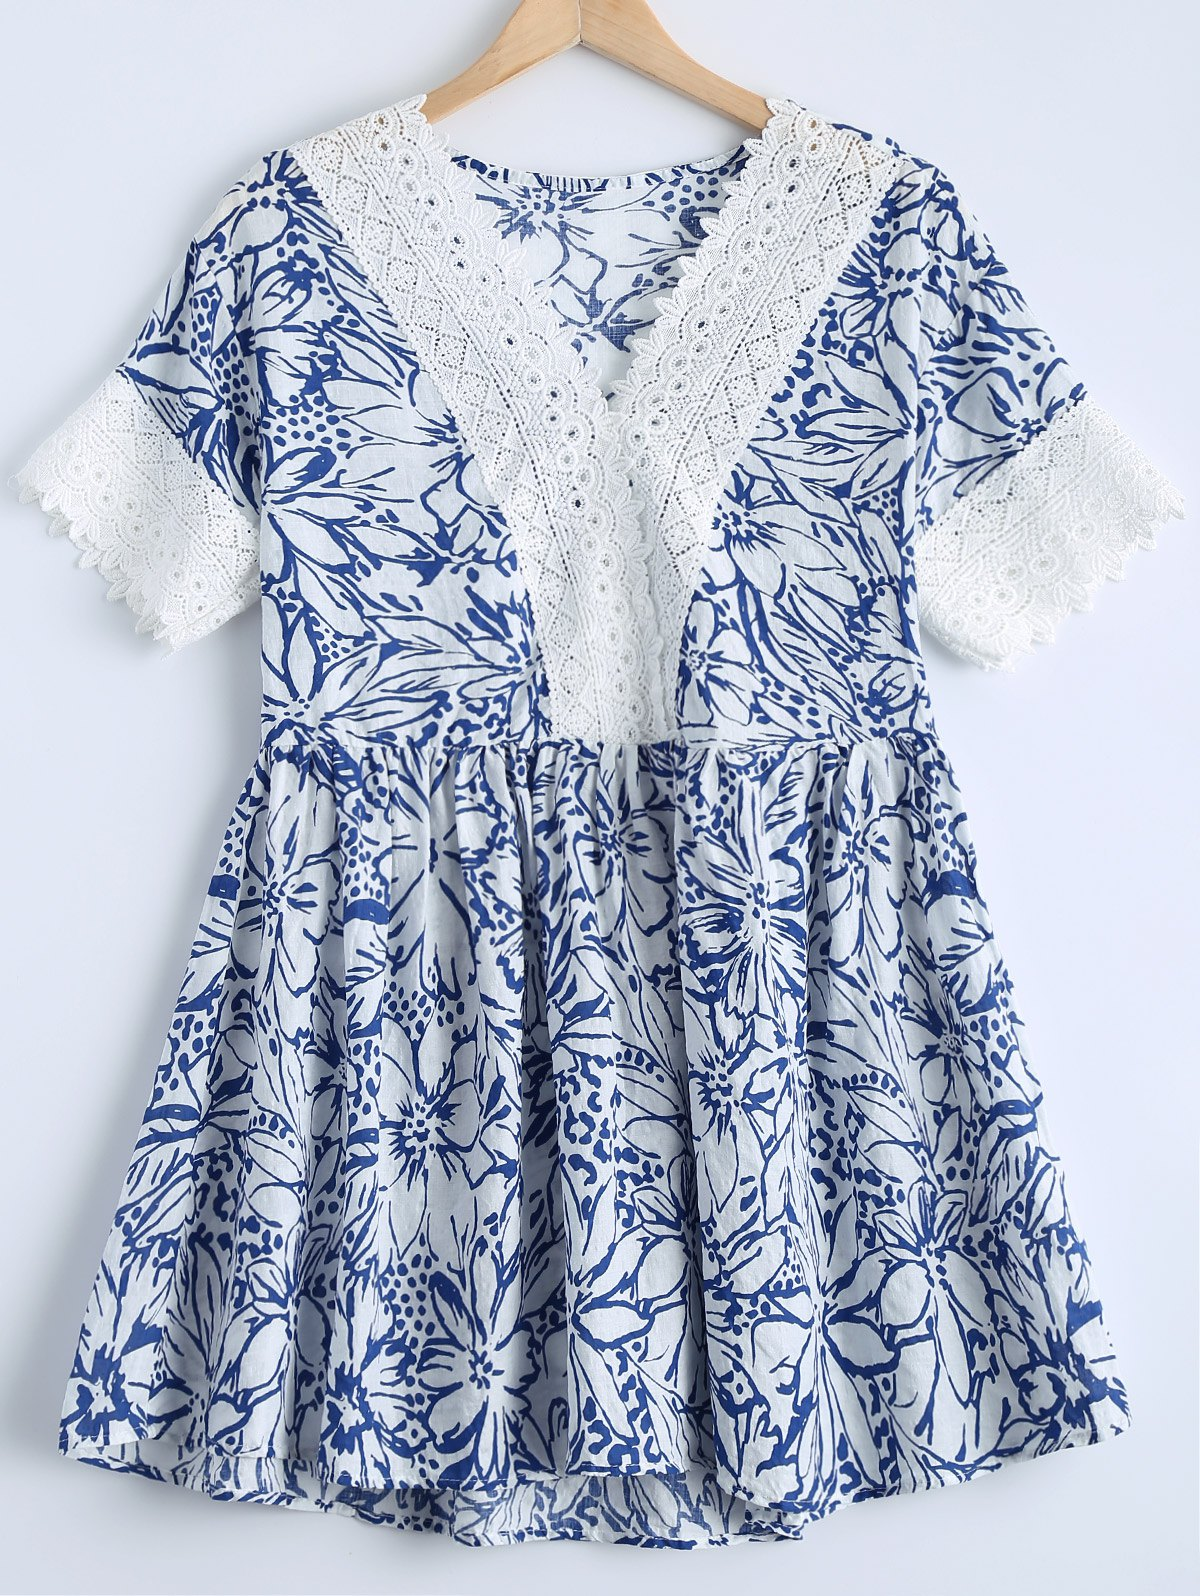 Sweet Women's V-Neck Lace Panelled Floral Print Short Sleeves Dress - DENIM BLUE ONE SIZE(FIT SIZE XS TO M)